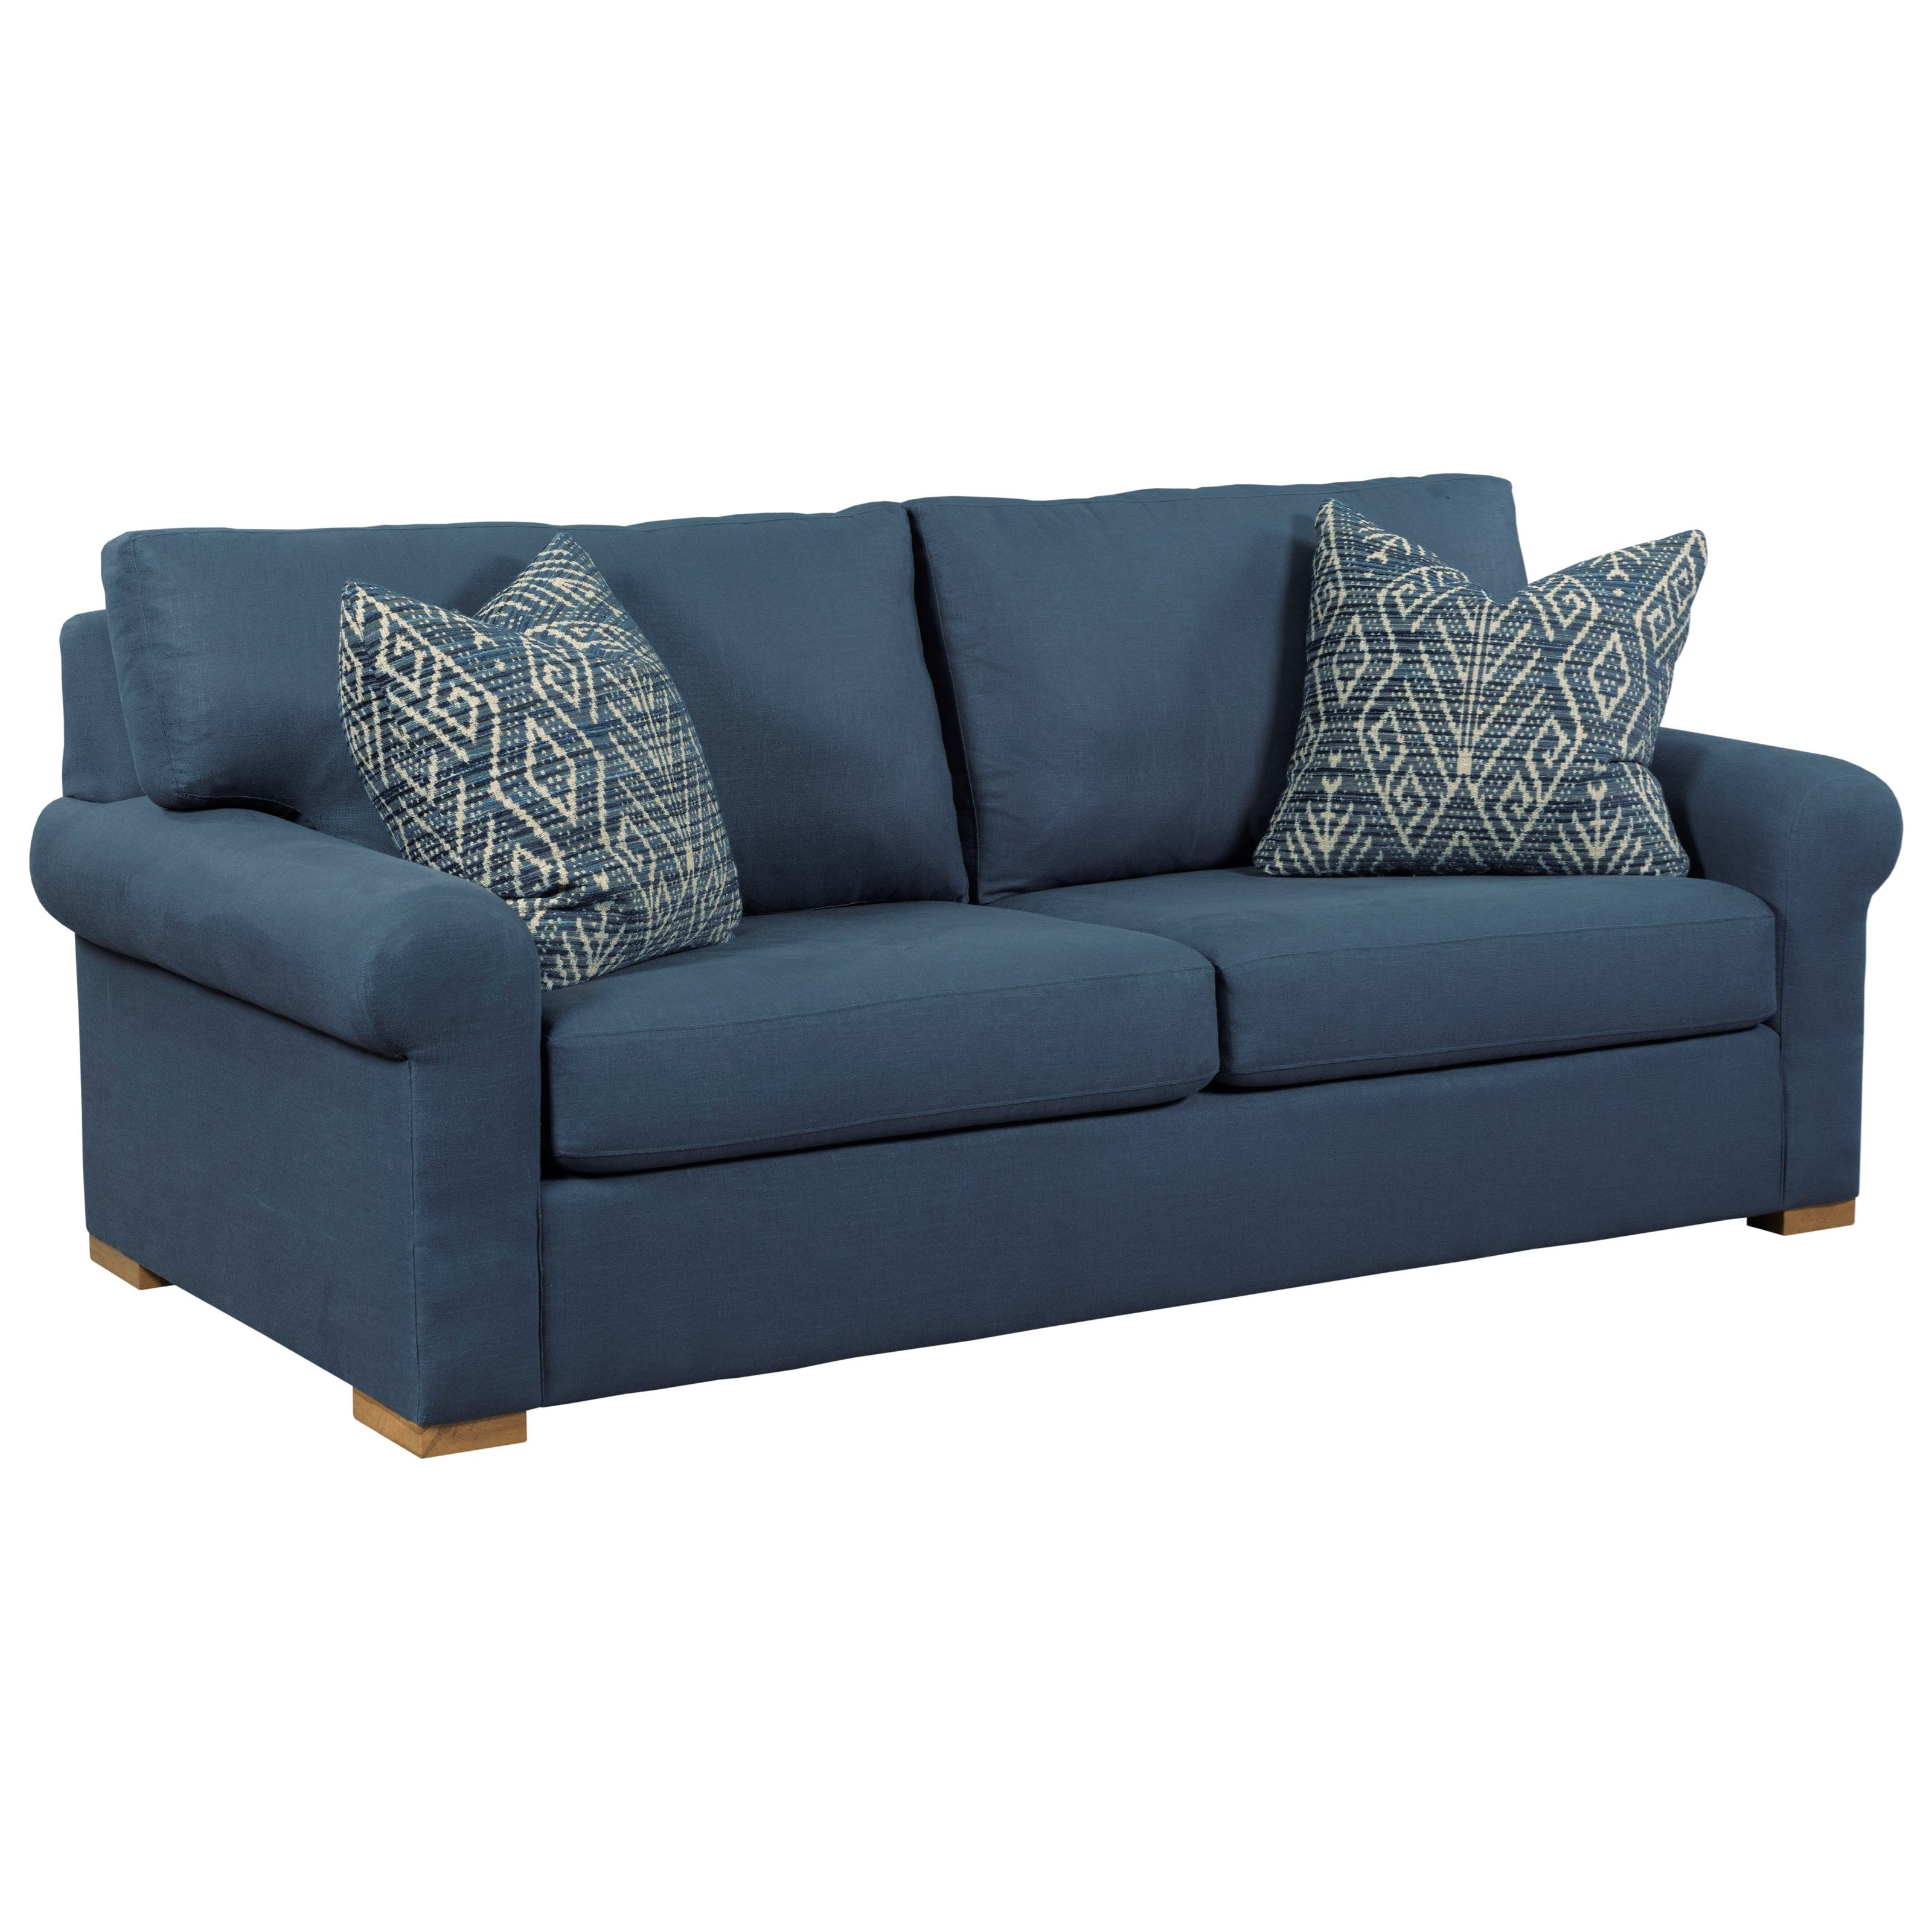 Comfort Select Sofa by Kincaid Furniture at Johnny Janosik